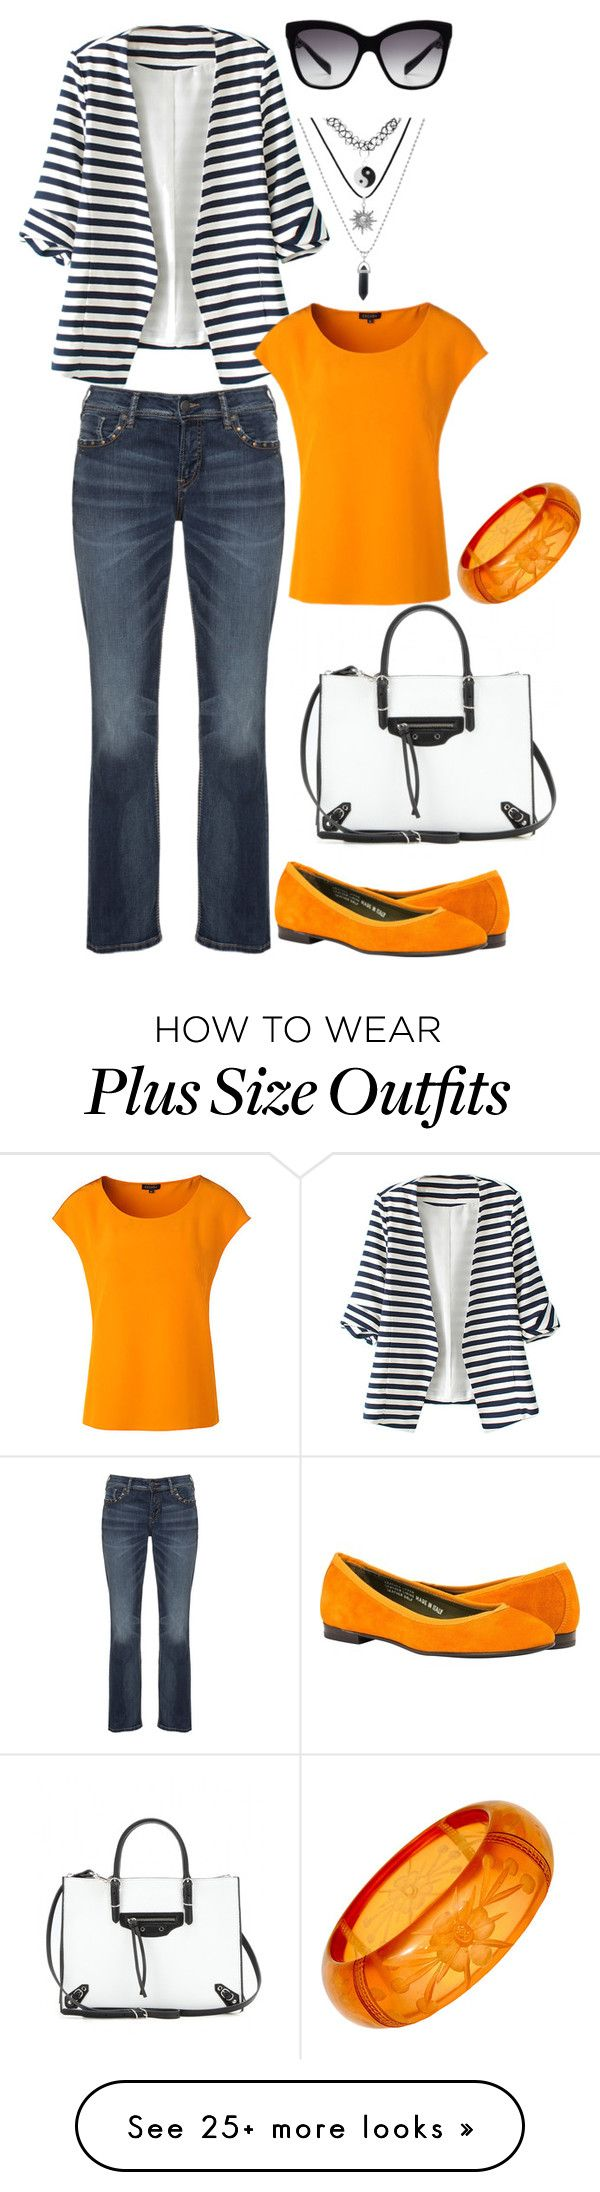 """""""Warm day"""" by memilia-4 on Polyvore featuring WithChic, Silver Jeans Co., Balenciaga, ESCADA and Dolce&Gabbana"""